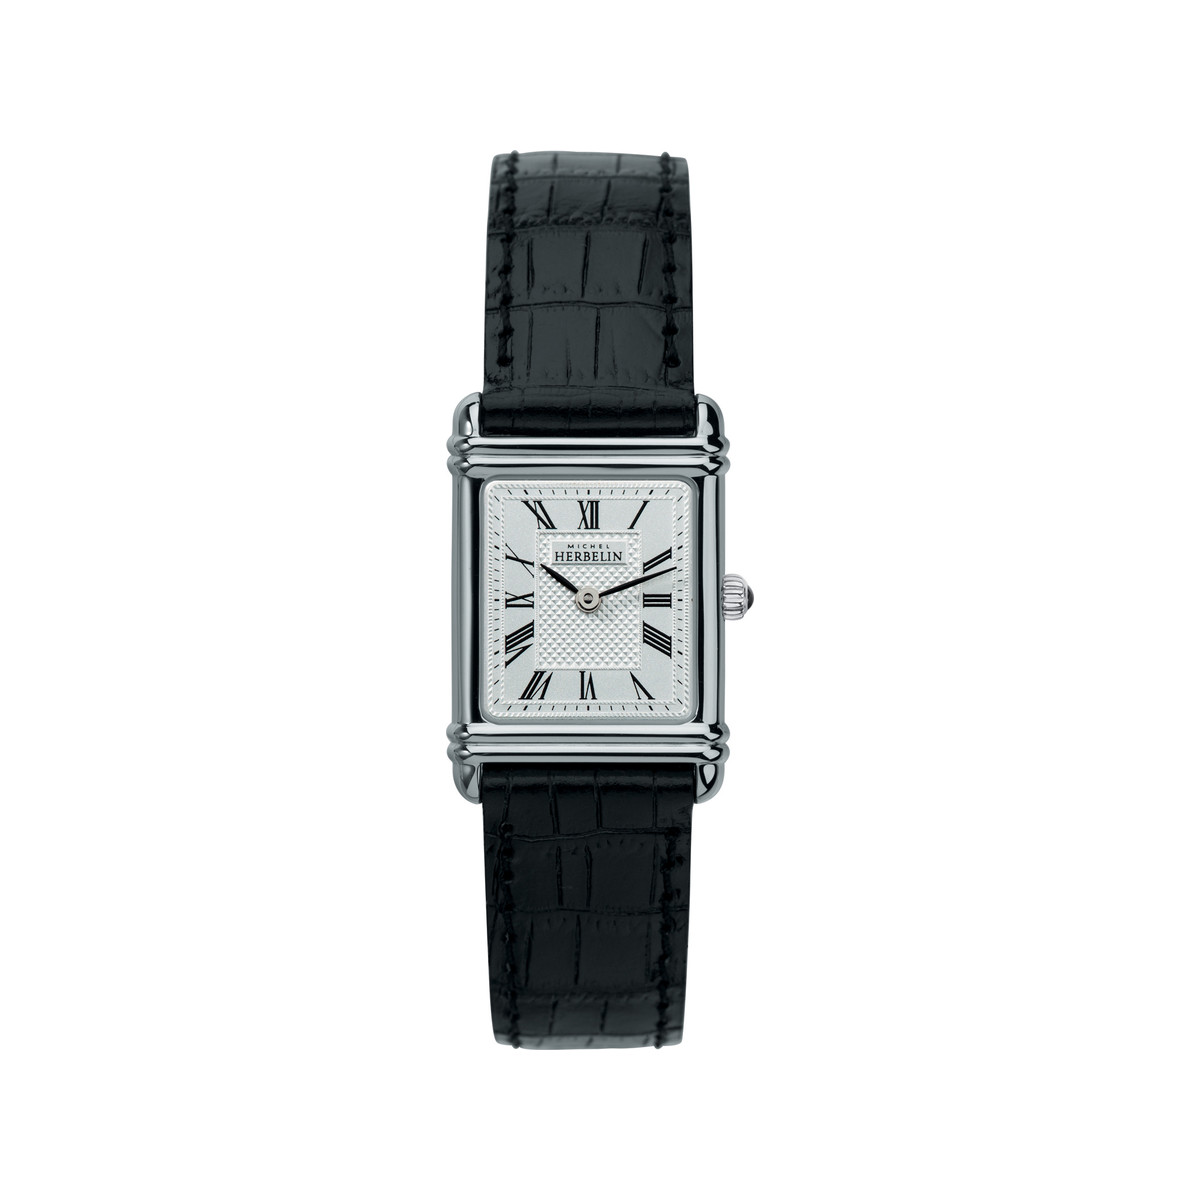 Montre MICHEL HERBELIN ART DECO Bracelet Cuir